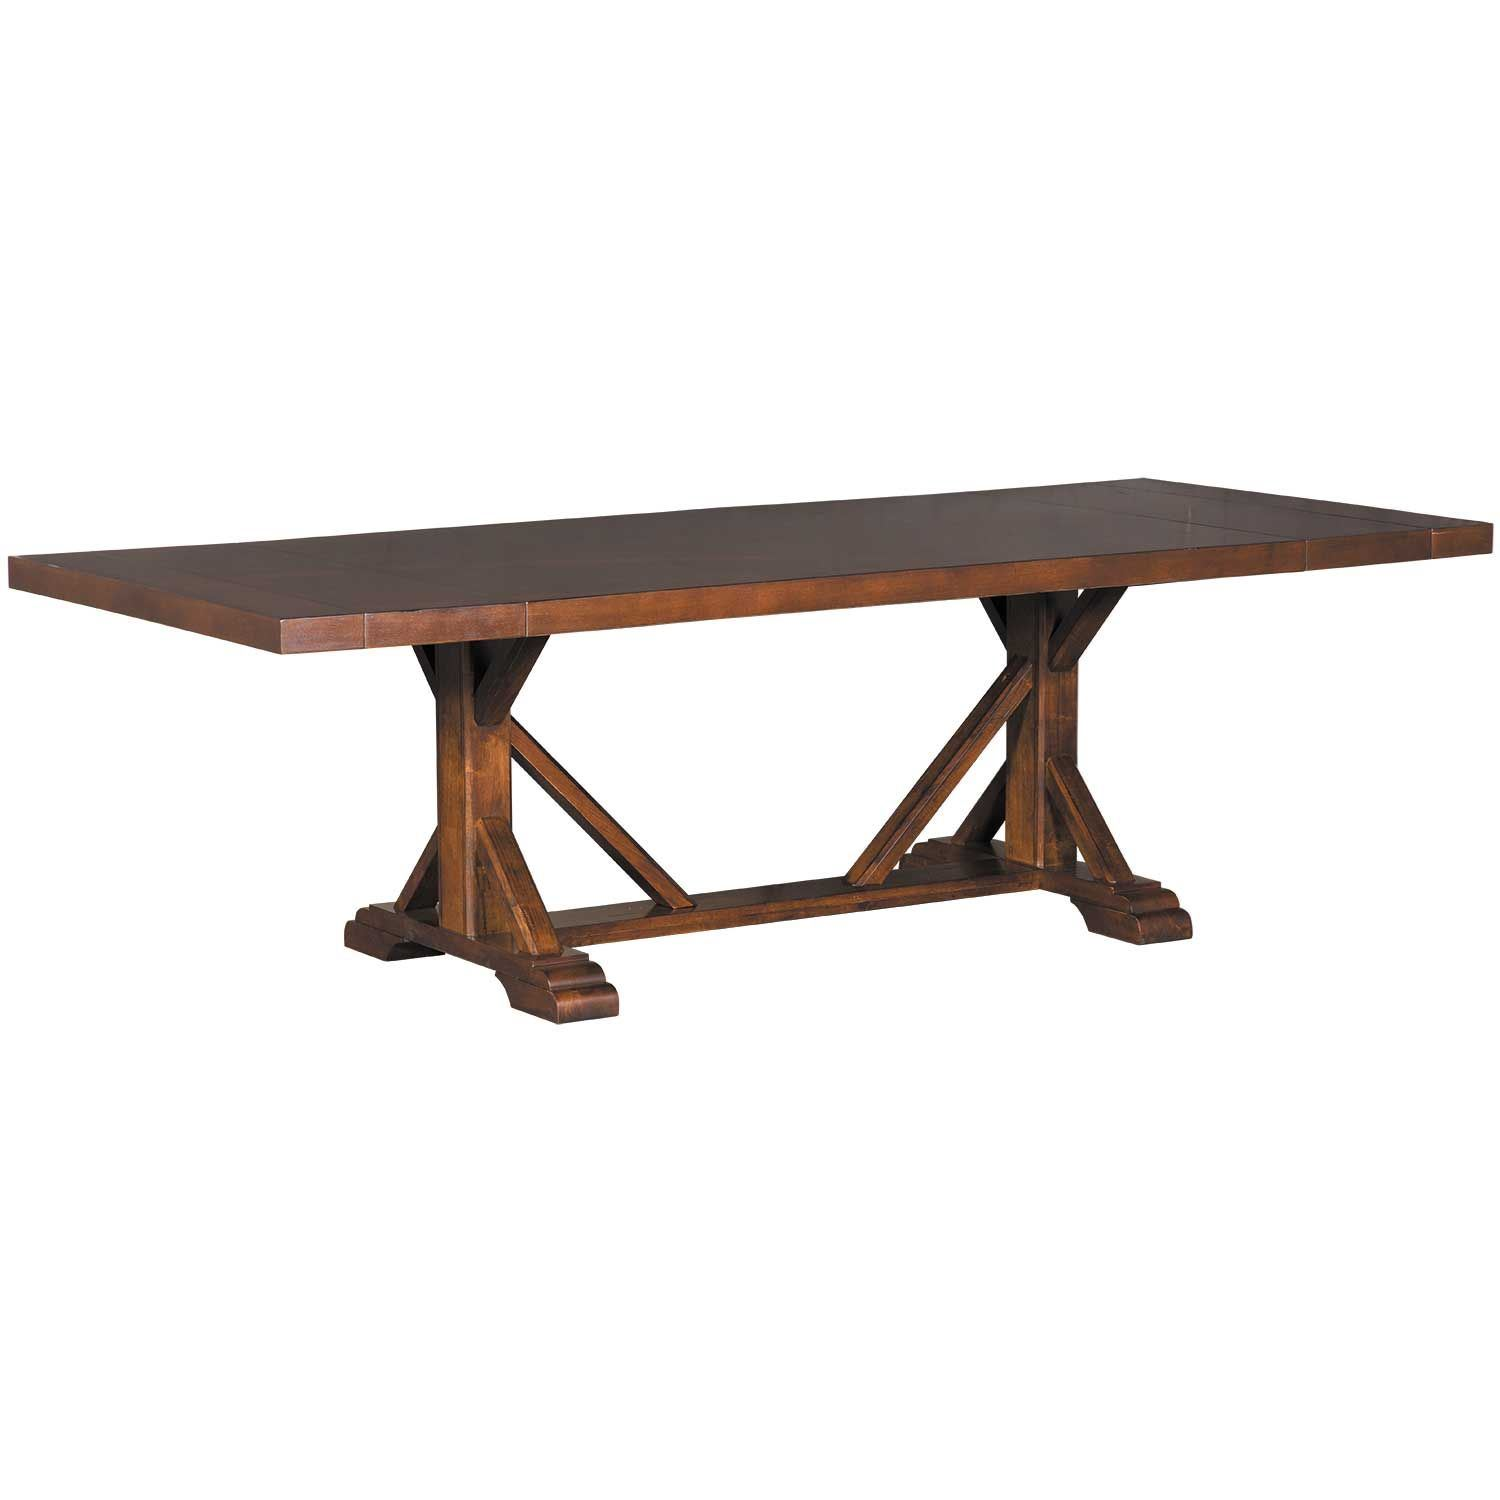 Picture of Breda Dining Table